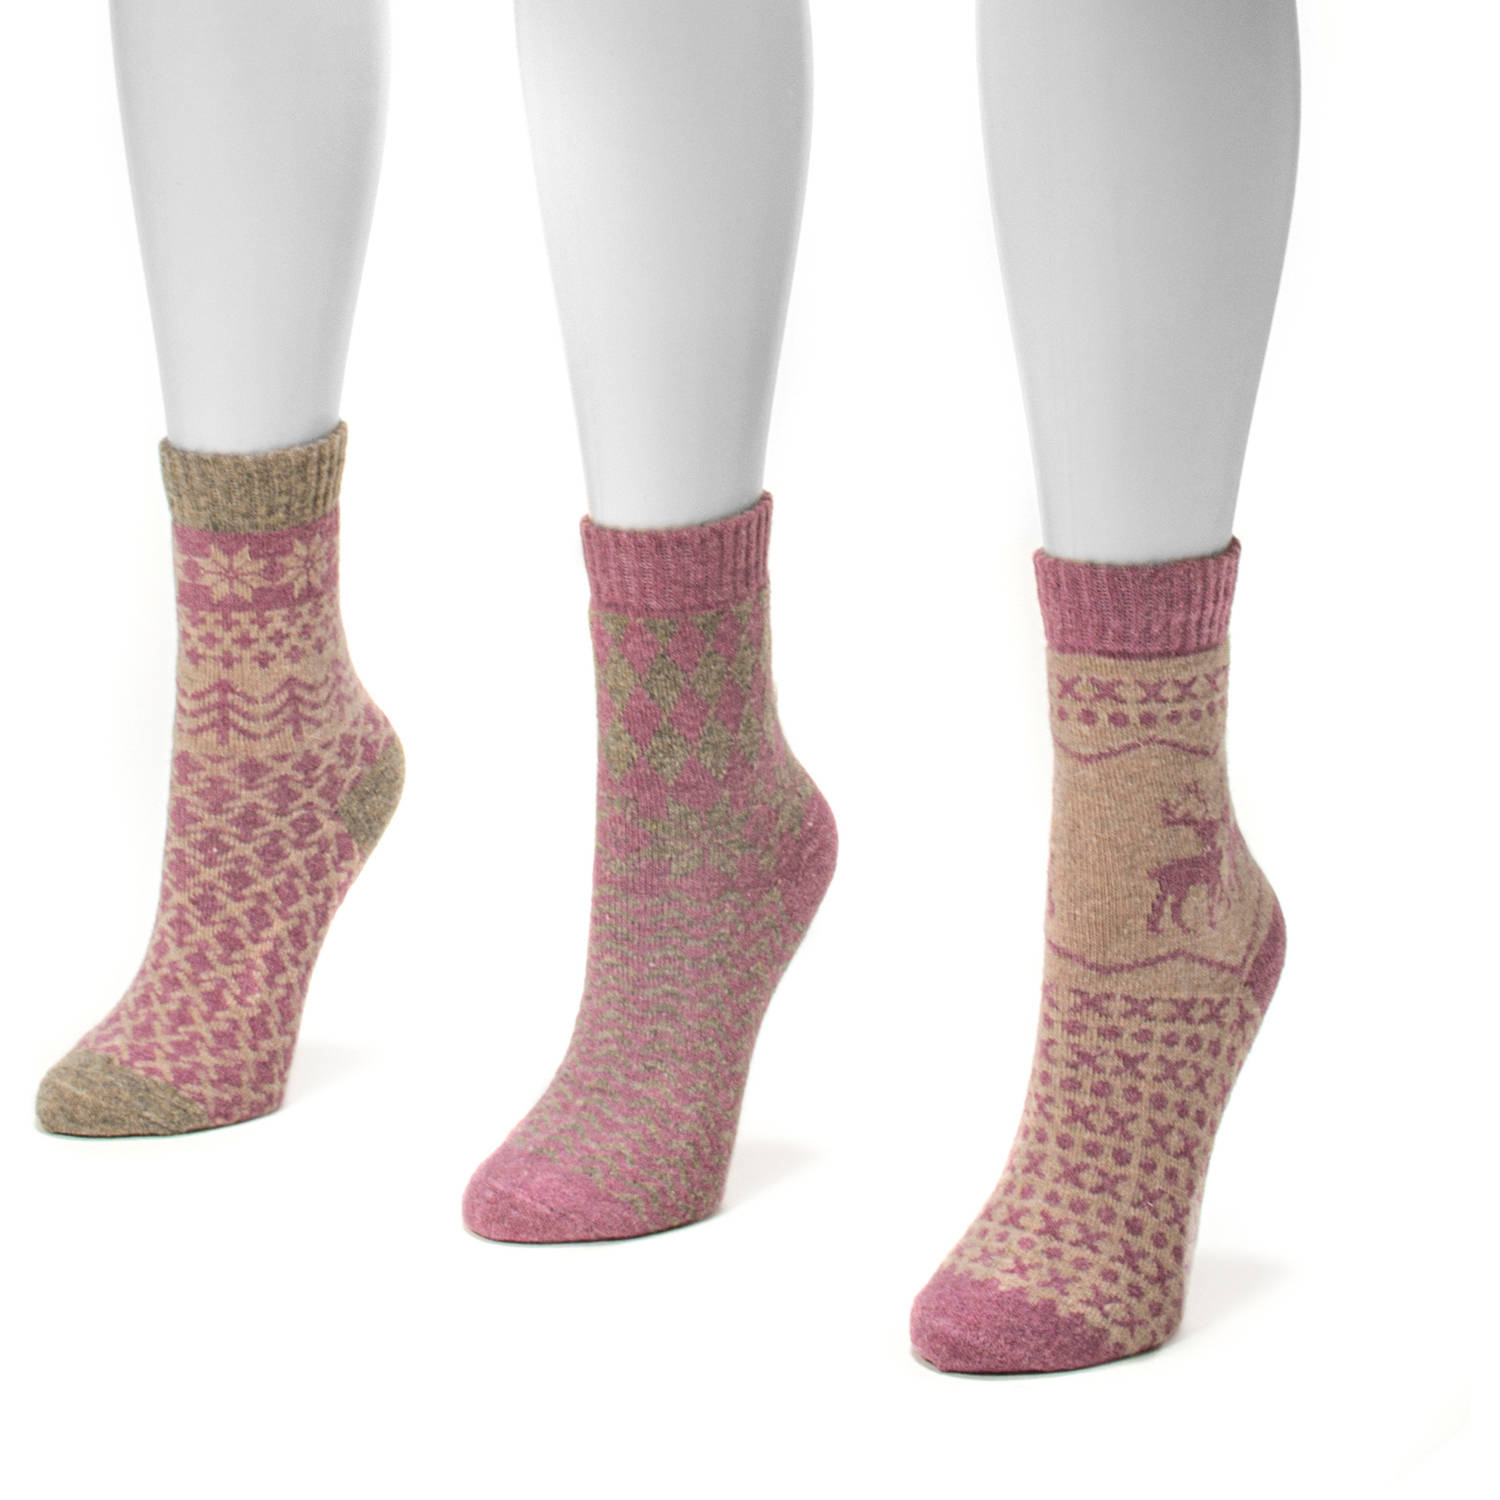 MUK LUKS Women's 3 Pair Holiday Crew Sock Pack